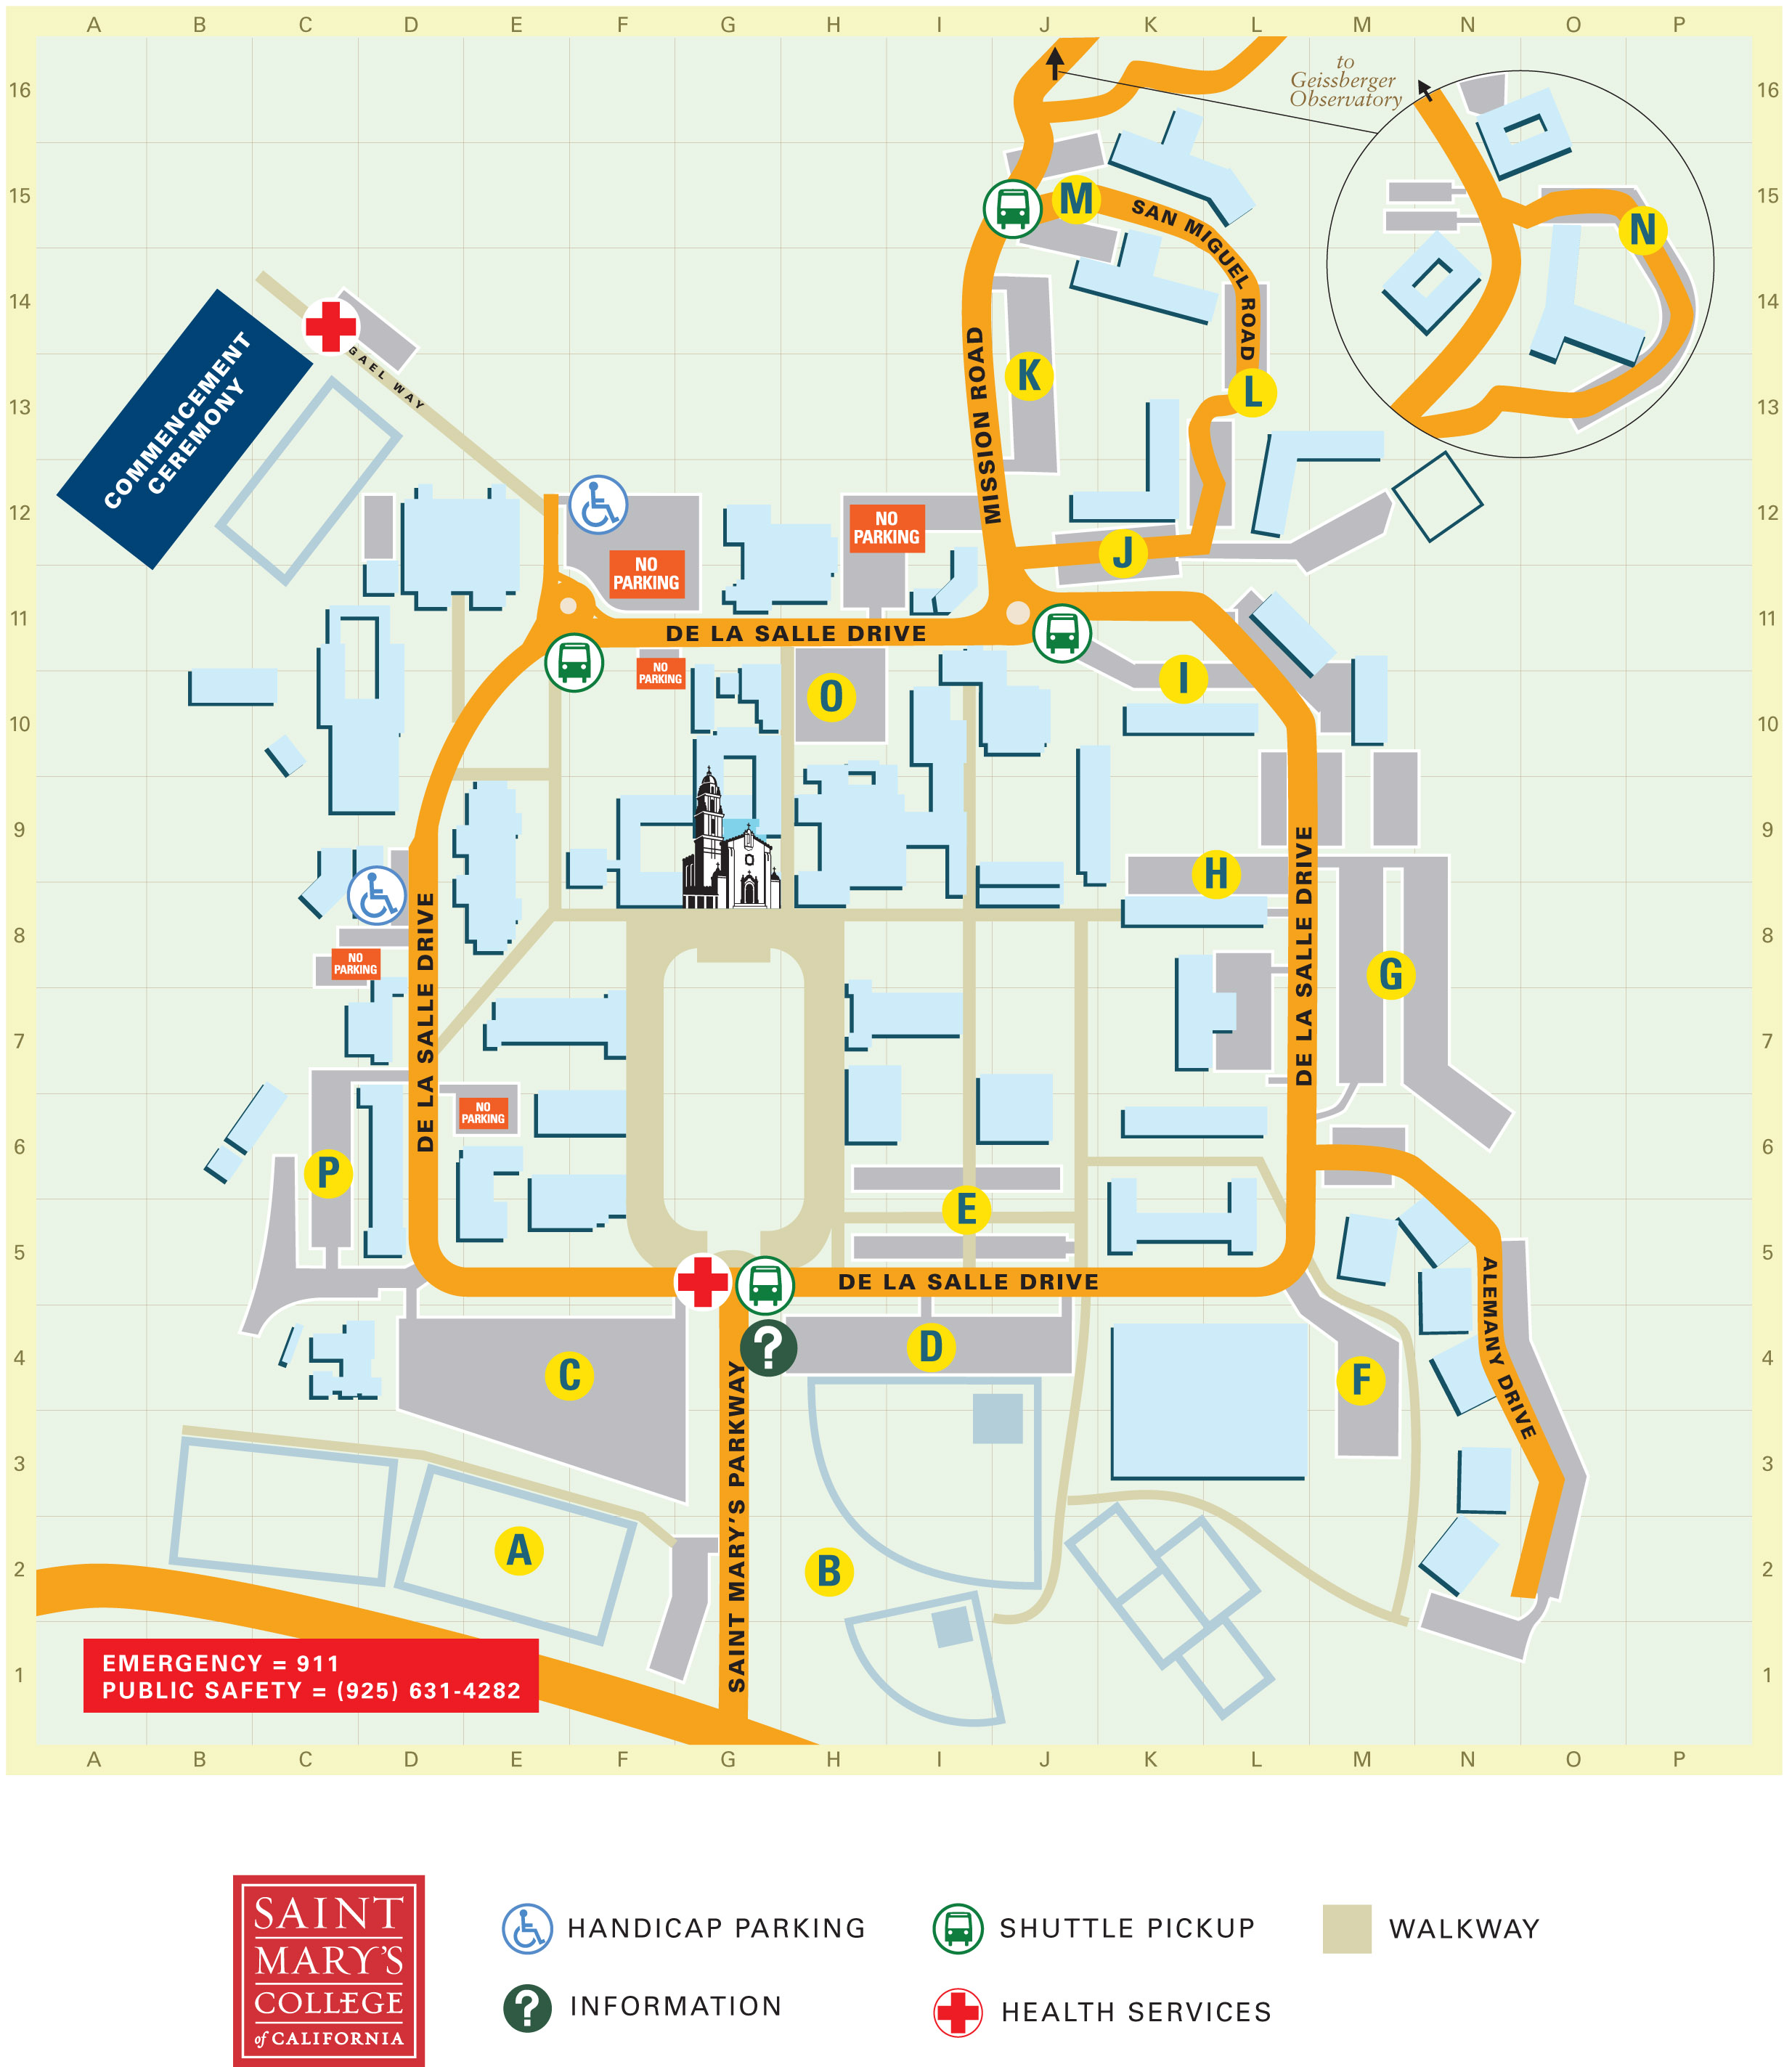 st marys campus map Parking Saint Mary S College st marys campus map